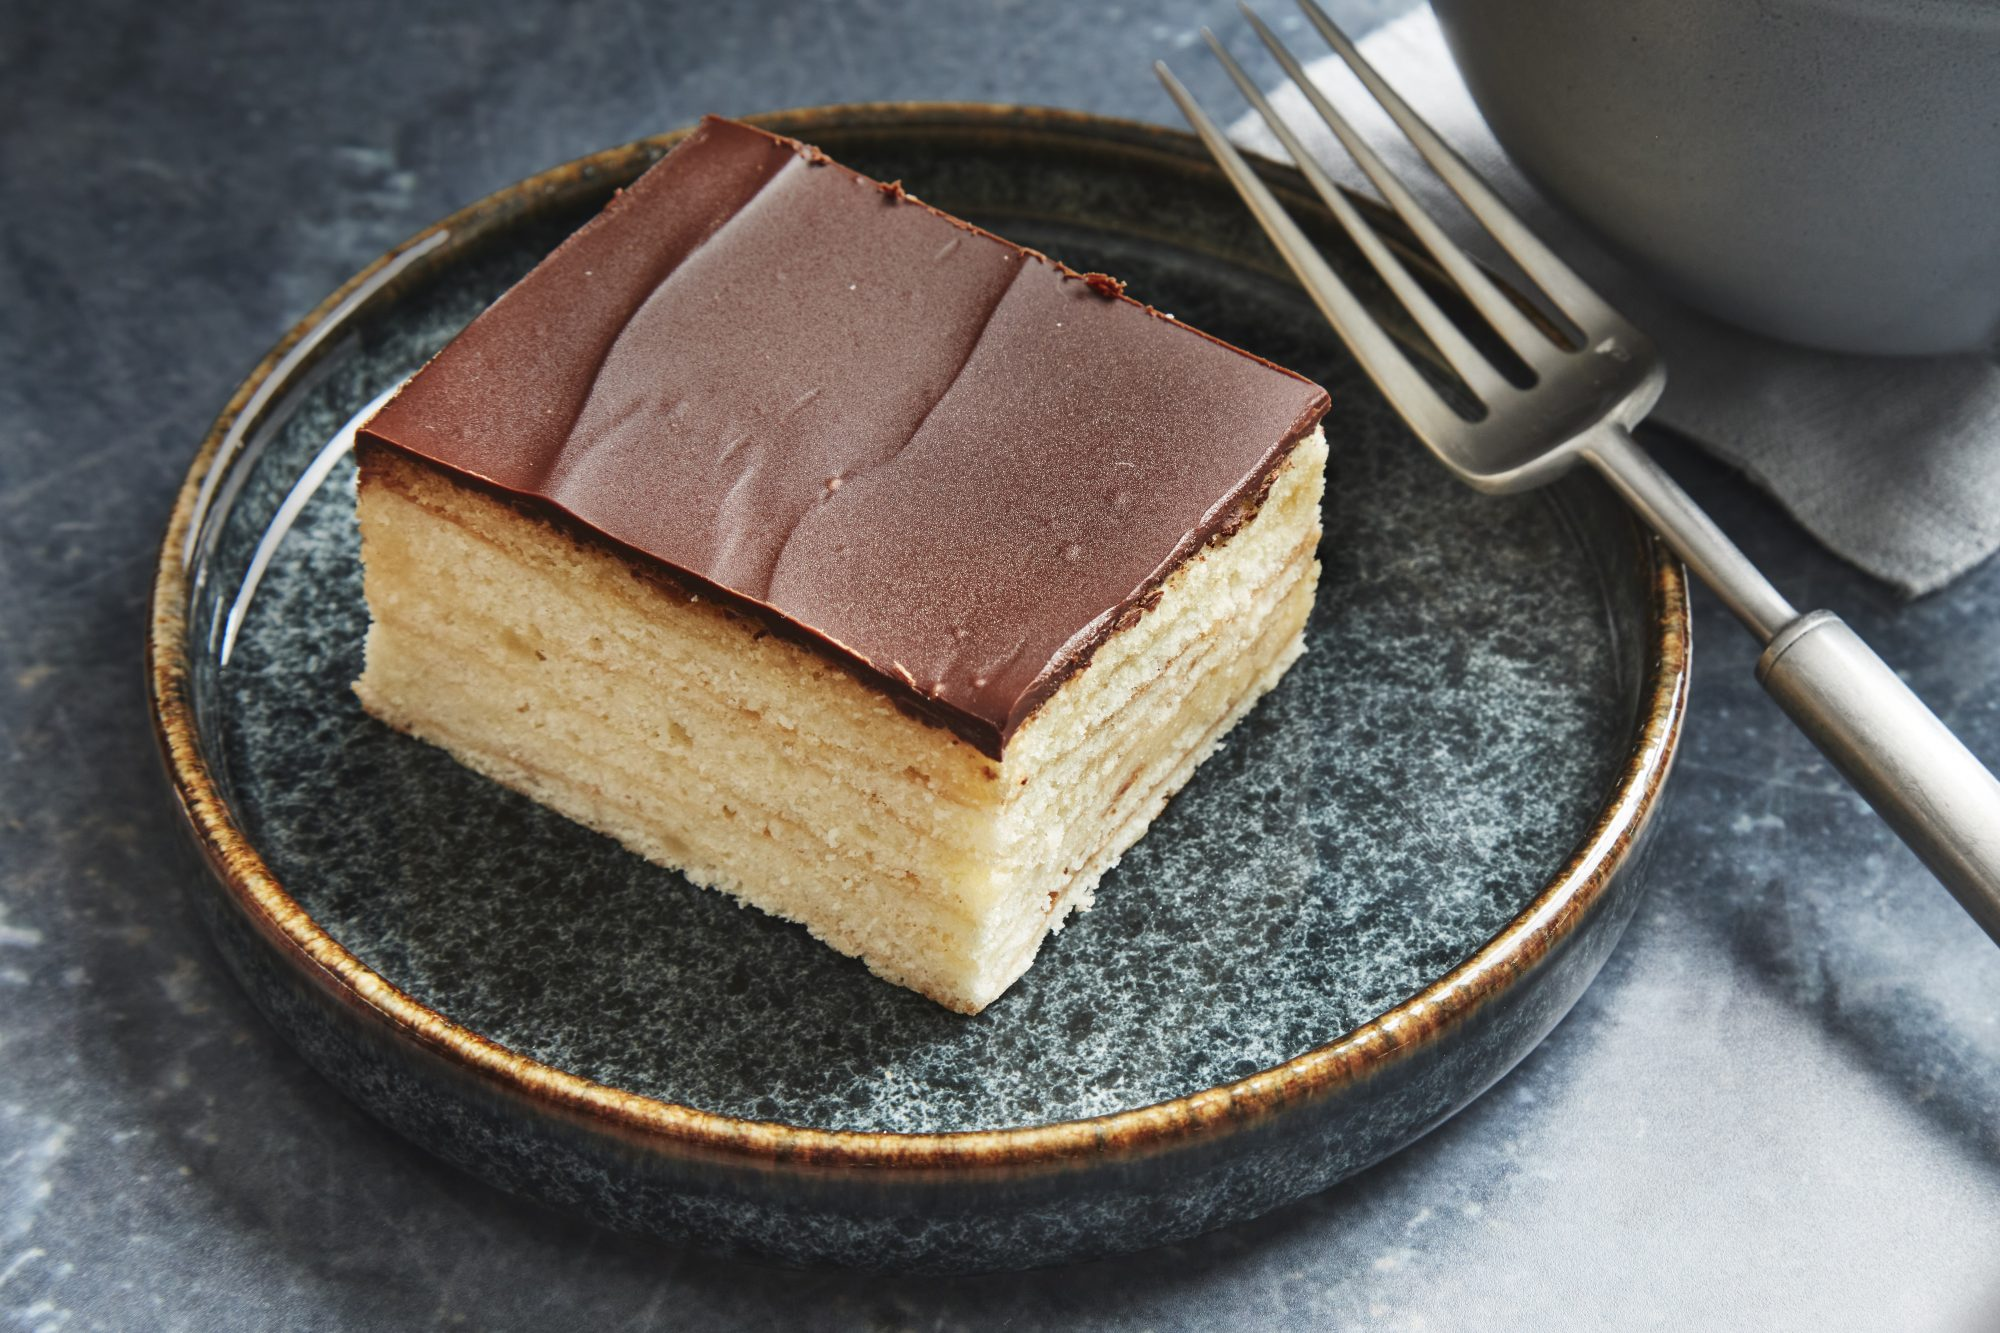 a single slice of a delicate layer cake known as baumkuchen topped with a layer of chocolate sitting on a small dessert plate with a fork